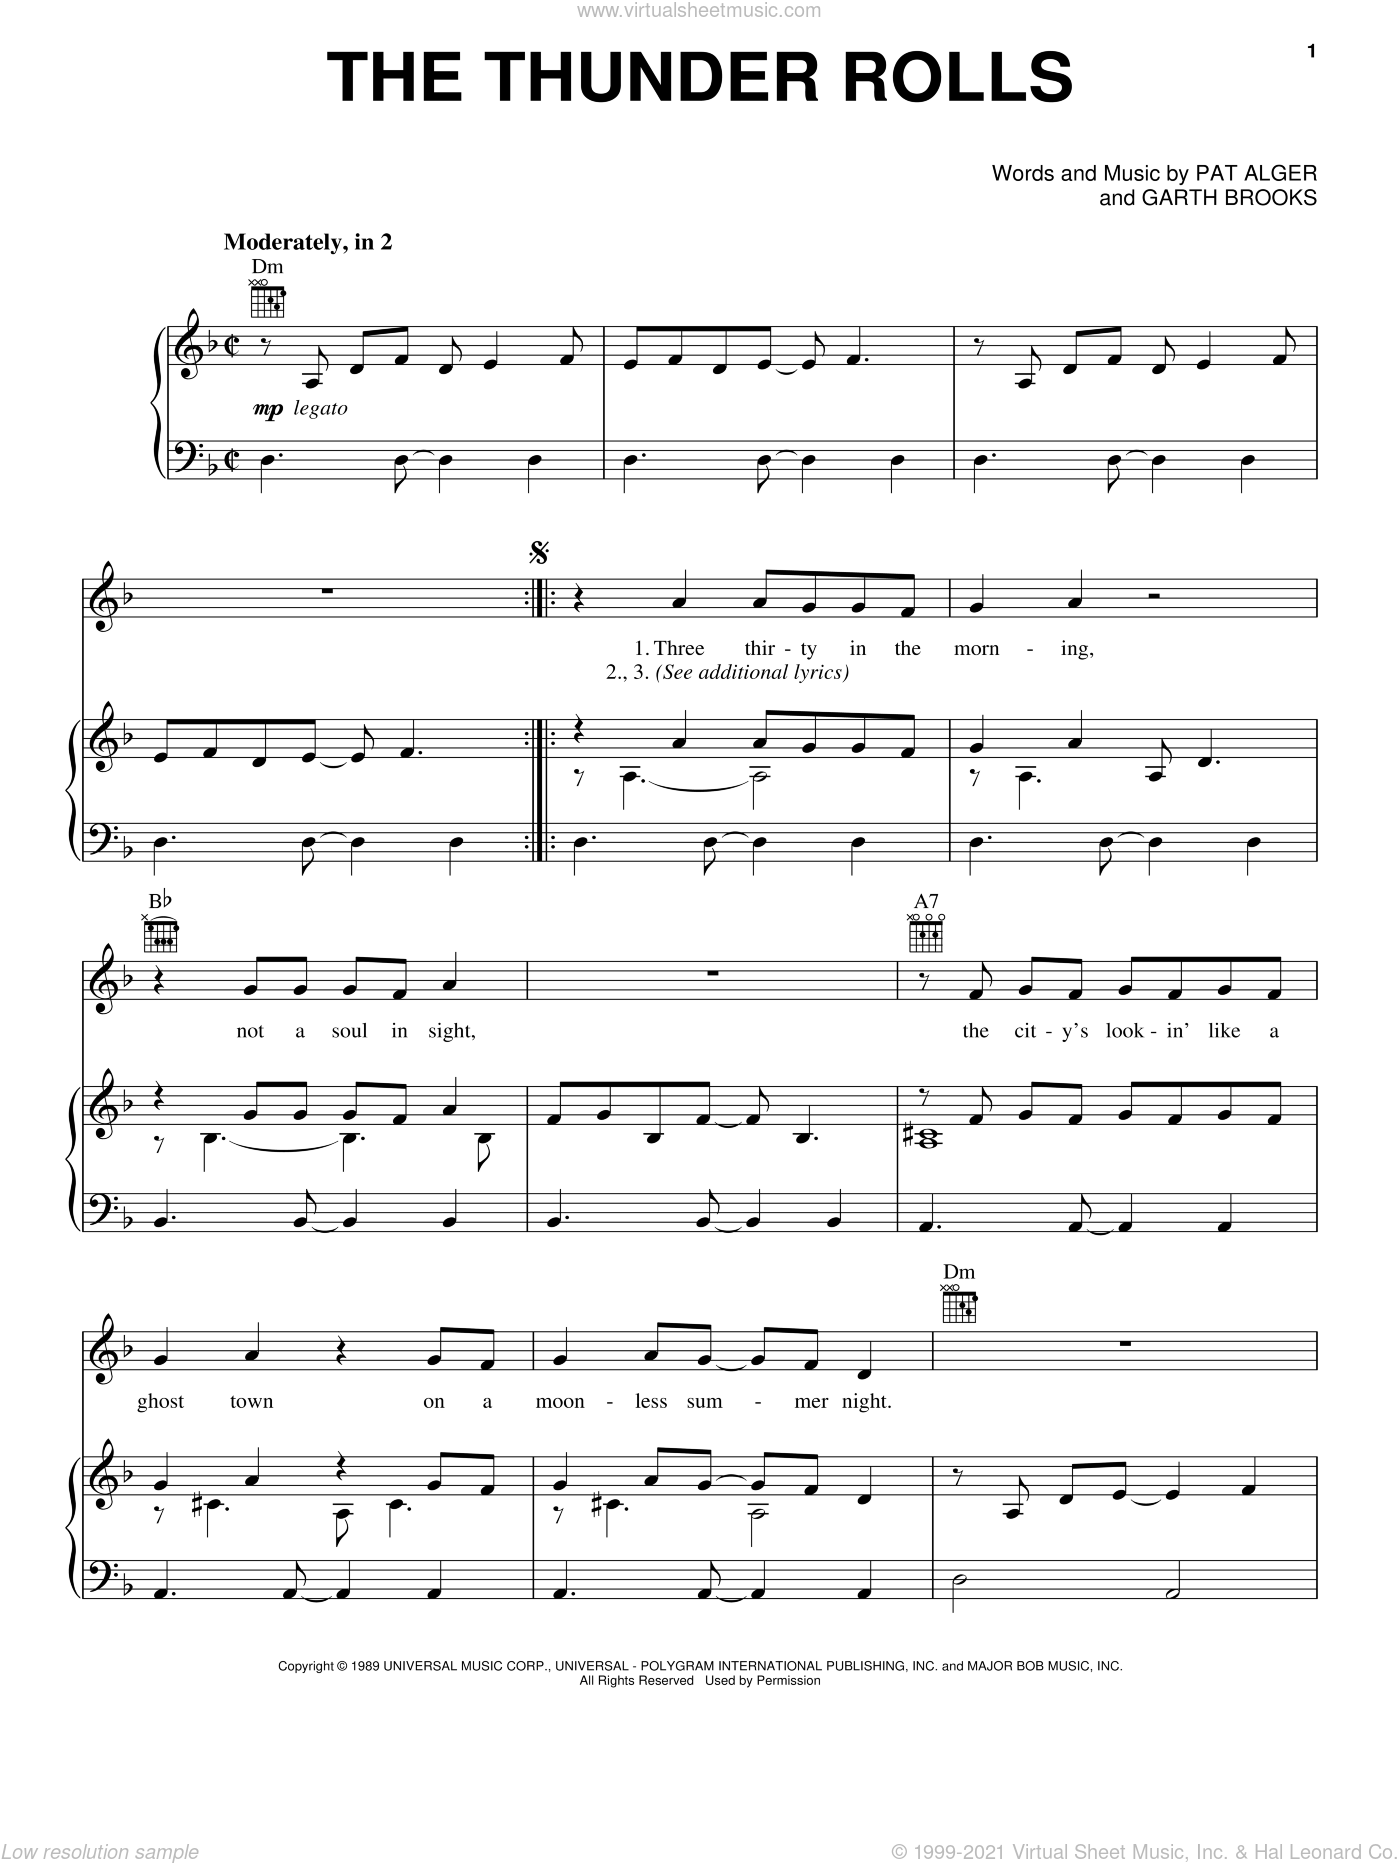 The Thunder Rolls sheet music for voice, piano or guitar by Garth Brooks and Patrick Alger, intermediate skill level